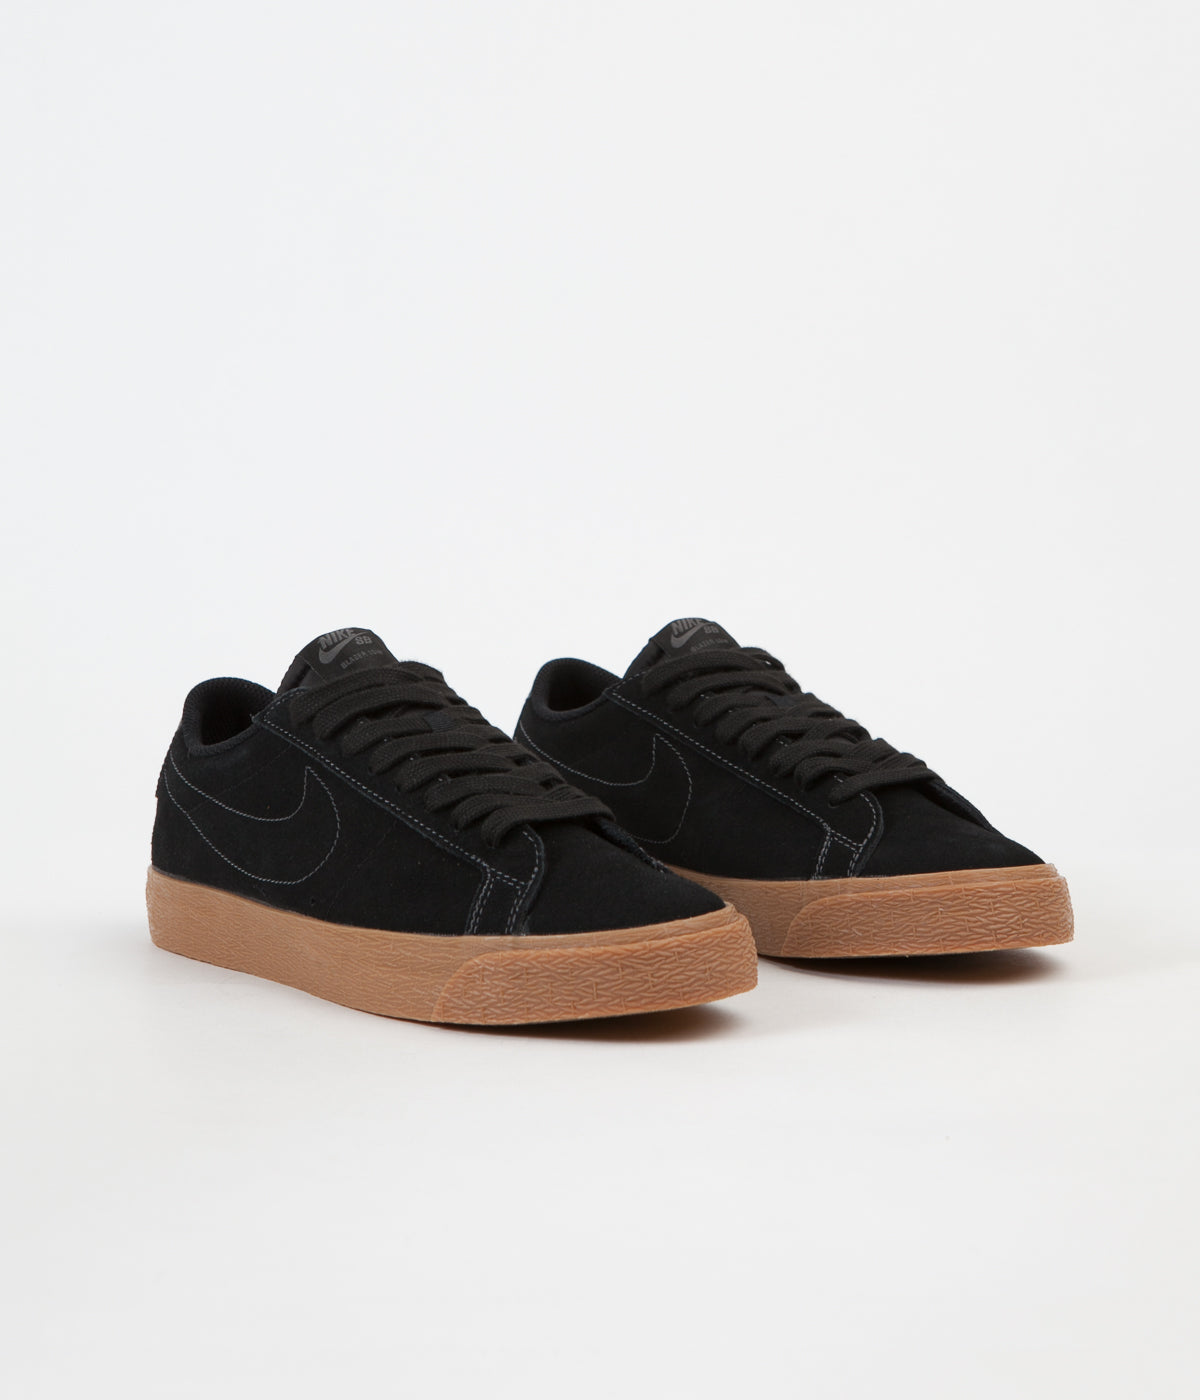 8f5ac224327 ... Nike SB Blazer Low Shoes - Black   Black   Anthracite ...